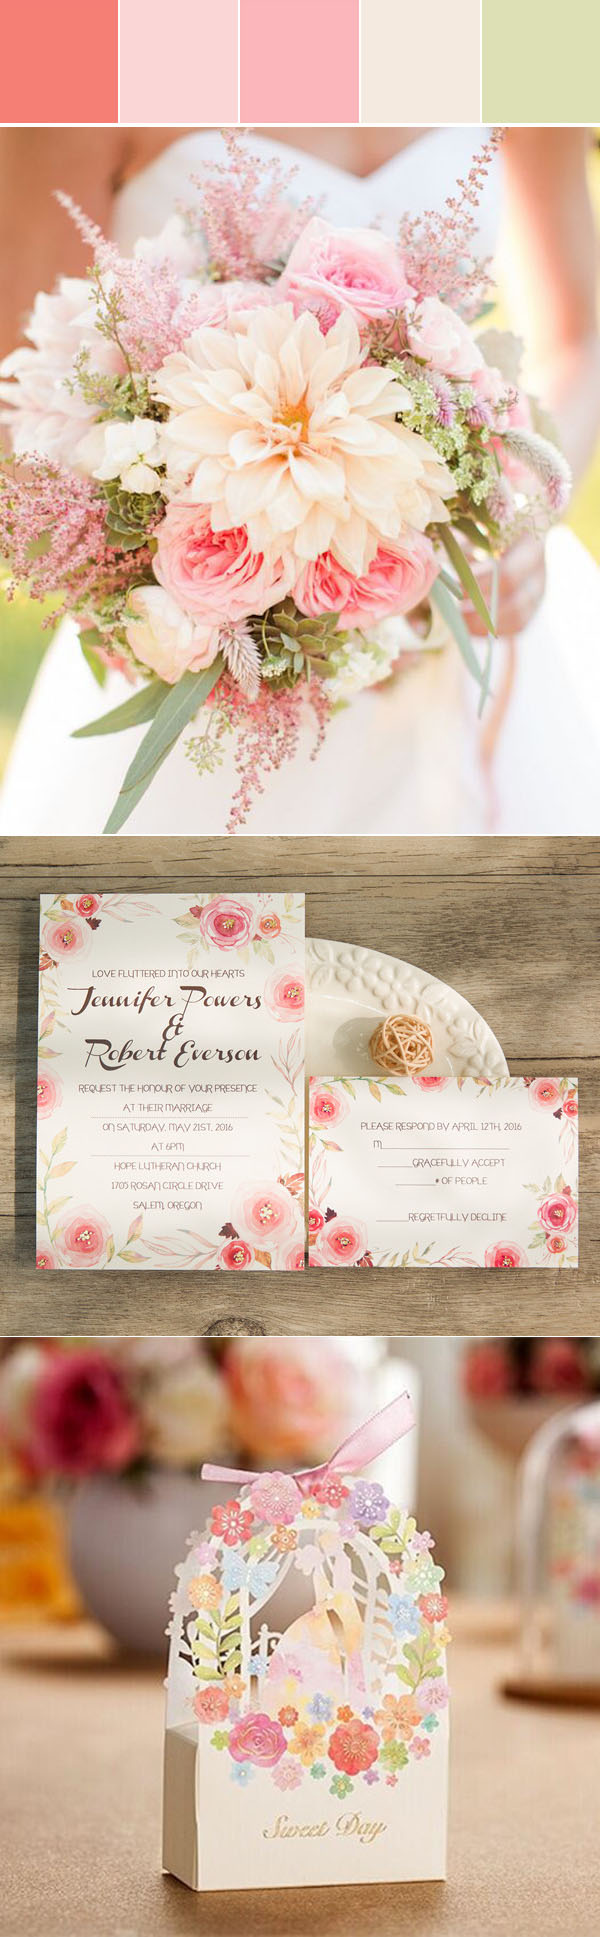 gorgeous spring and summer wedding colors, foil floral wedding invitation and wedding favor bags